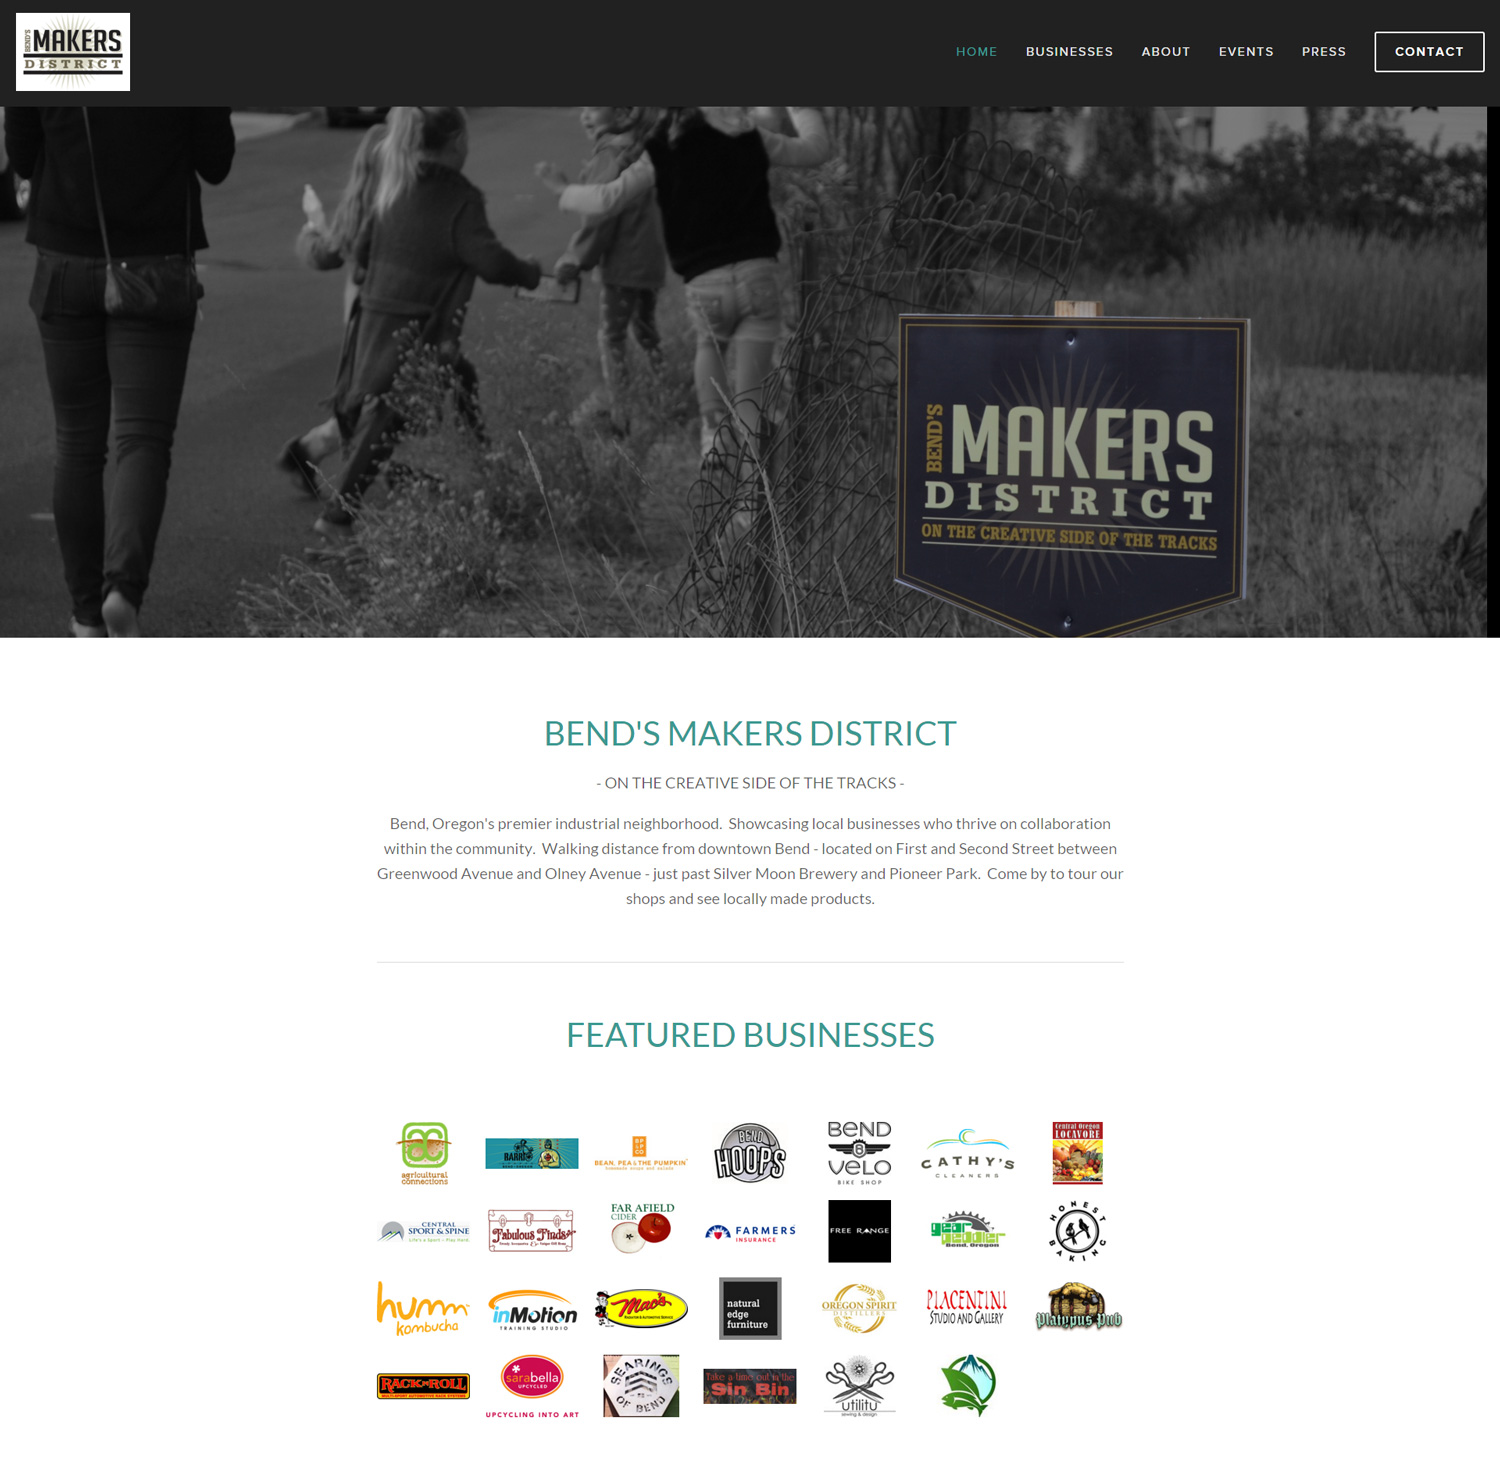 Bends Makers District Website Design